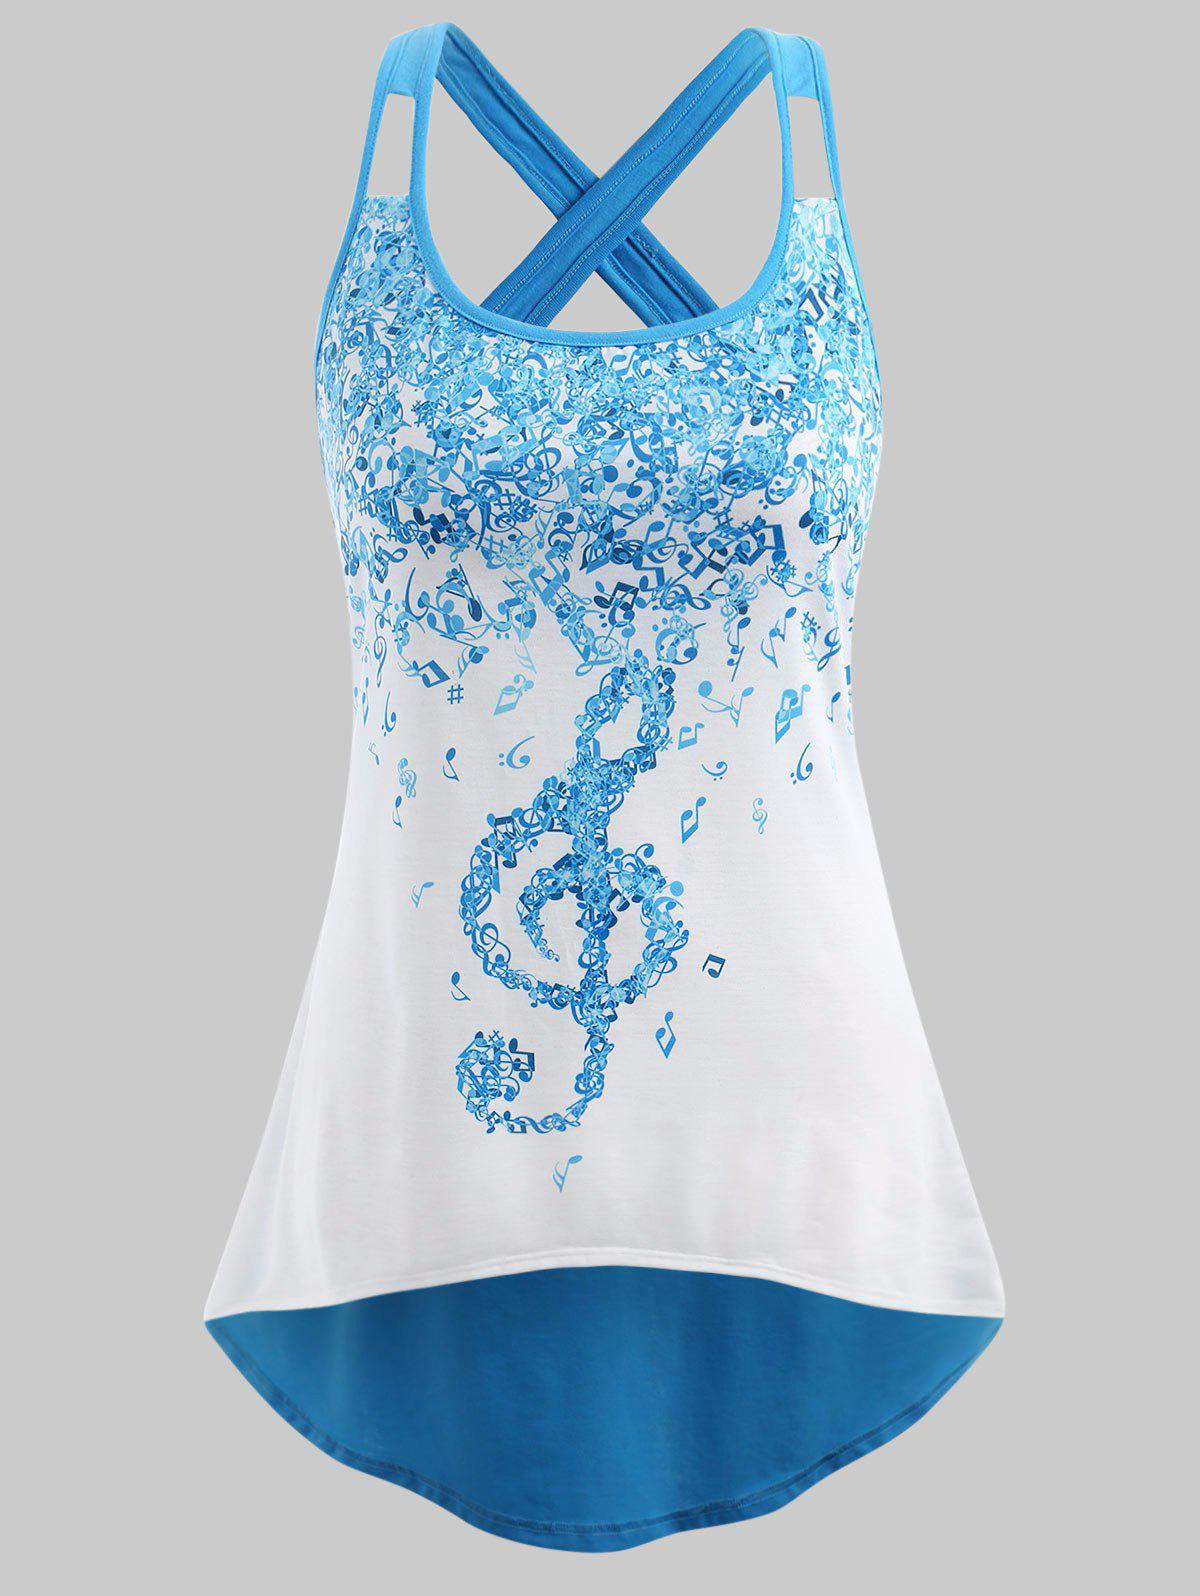 Plus Size Musical Notes Criss Cross Tank Top дорожка 900 1500мм